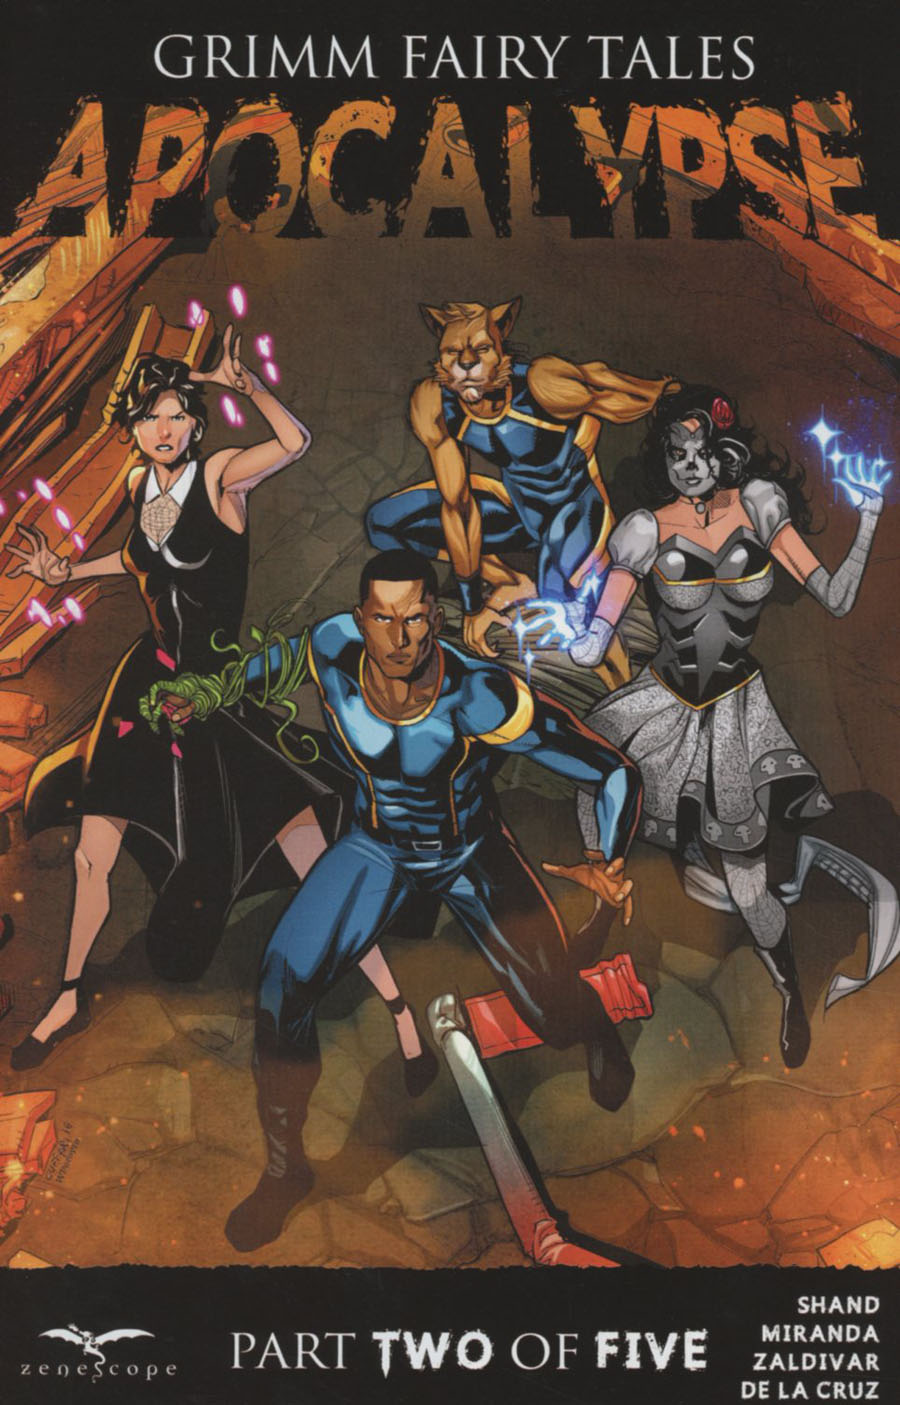 Grimm Fairy Tales Presents Apocalypse #2 Cover A Salvatore Cuffari